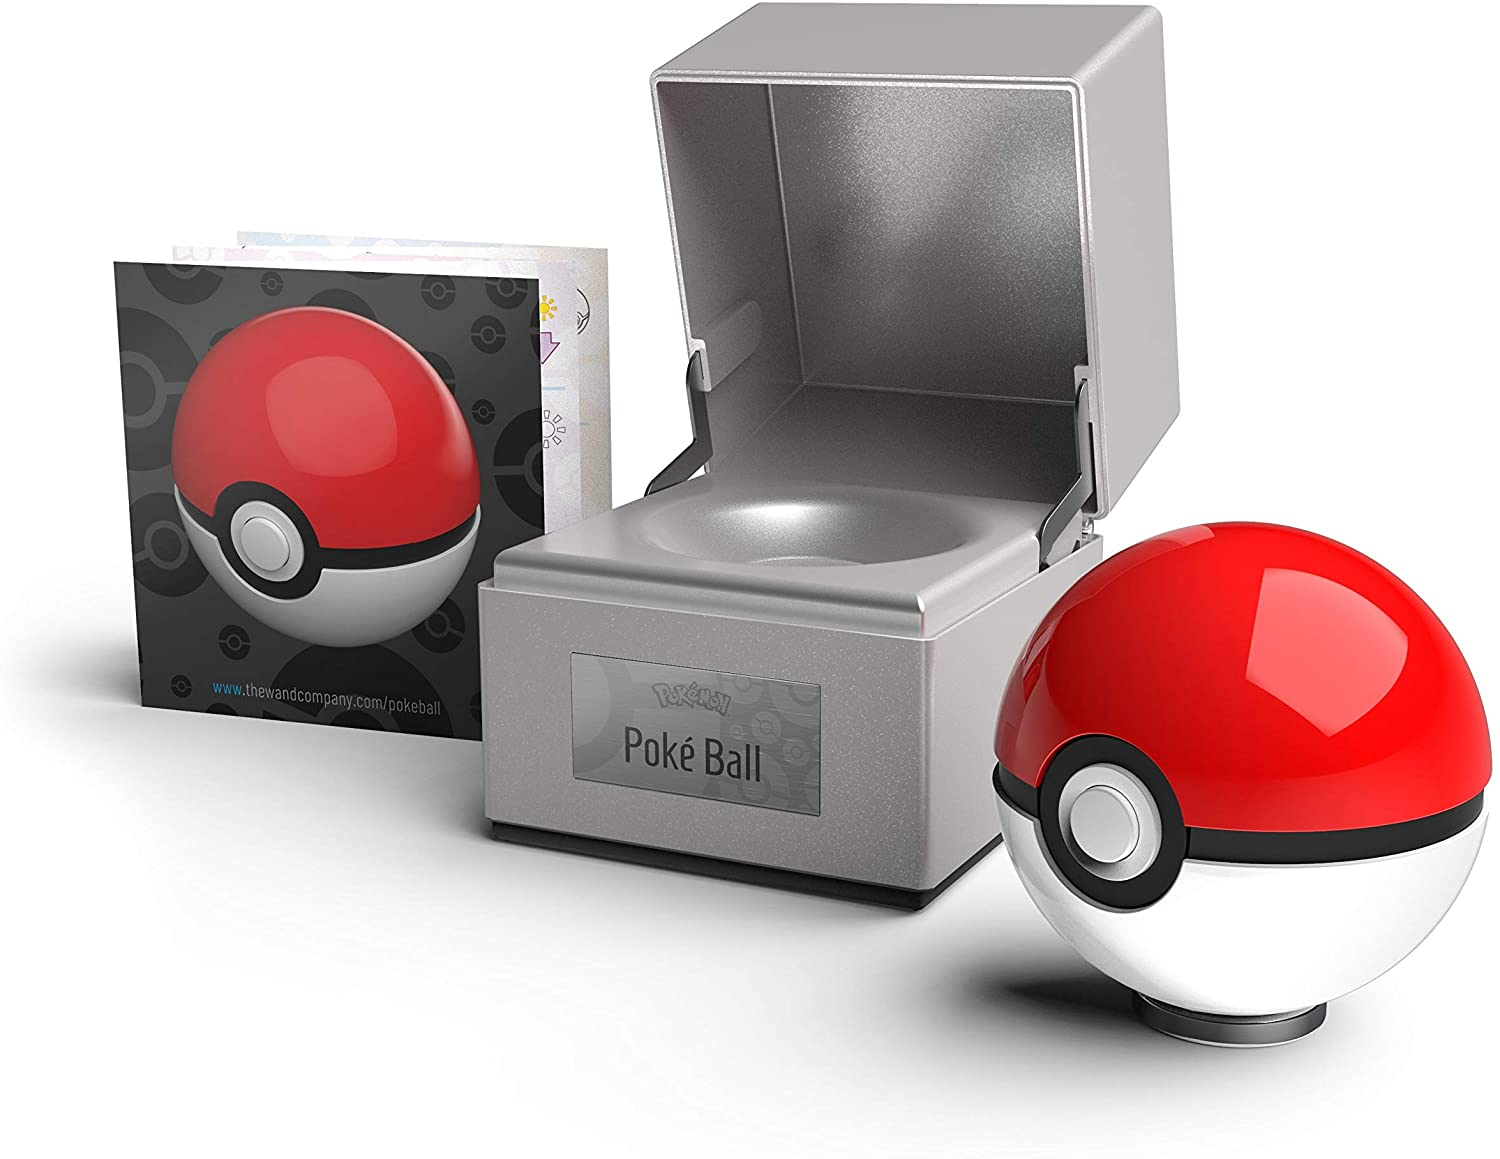 Official Poké Balls replicas light up just like the real thing 21